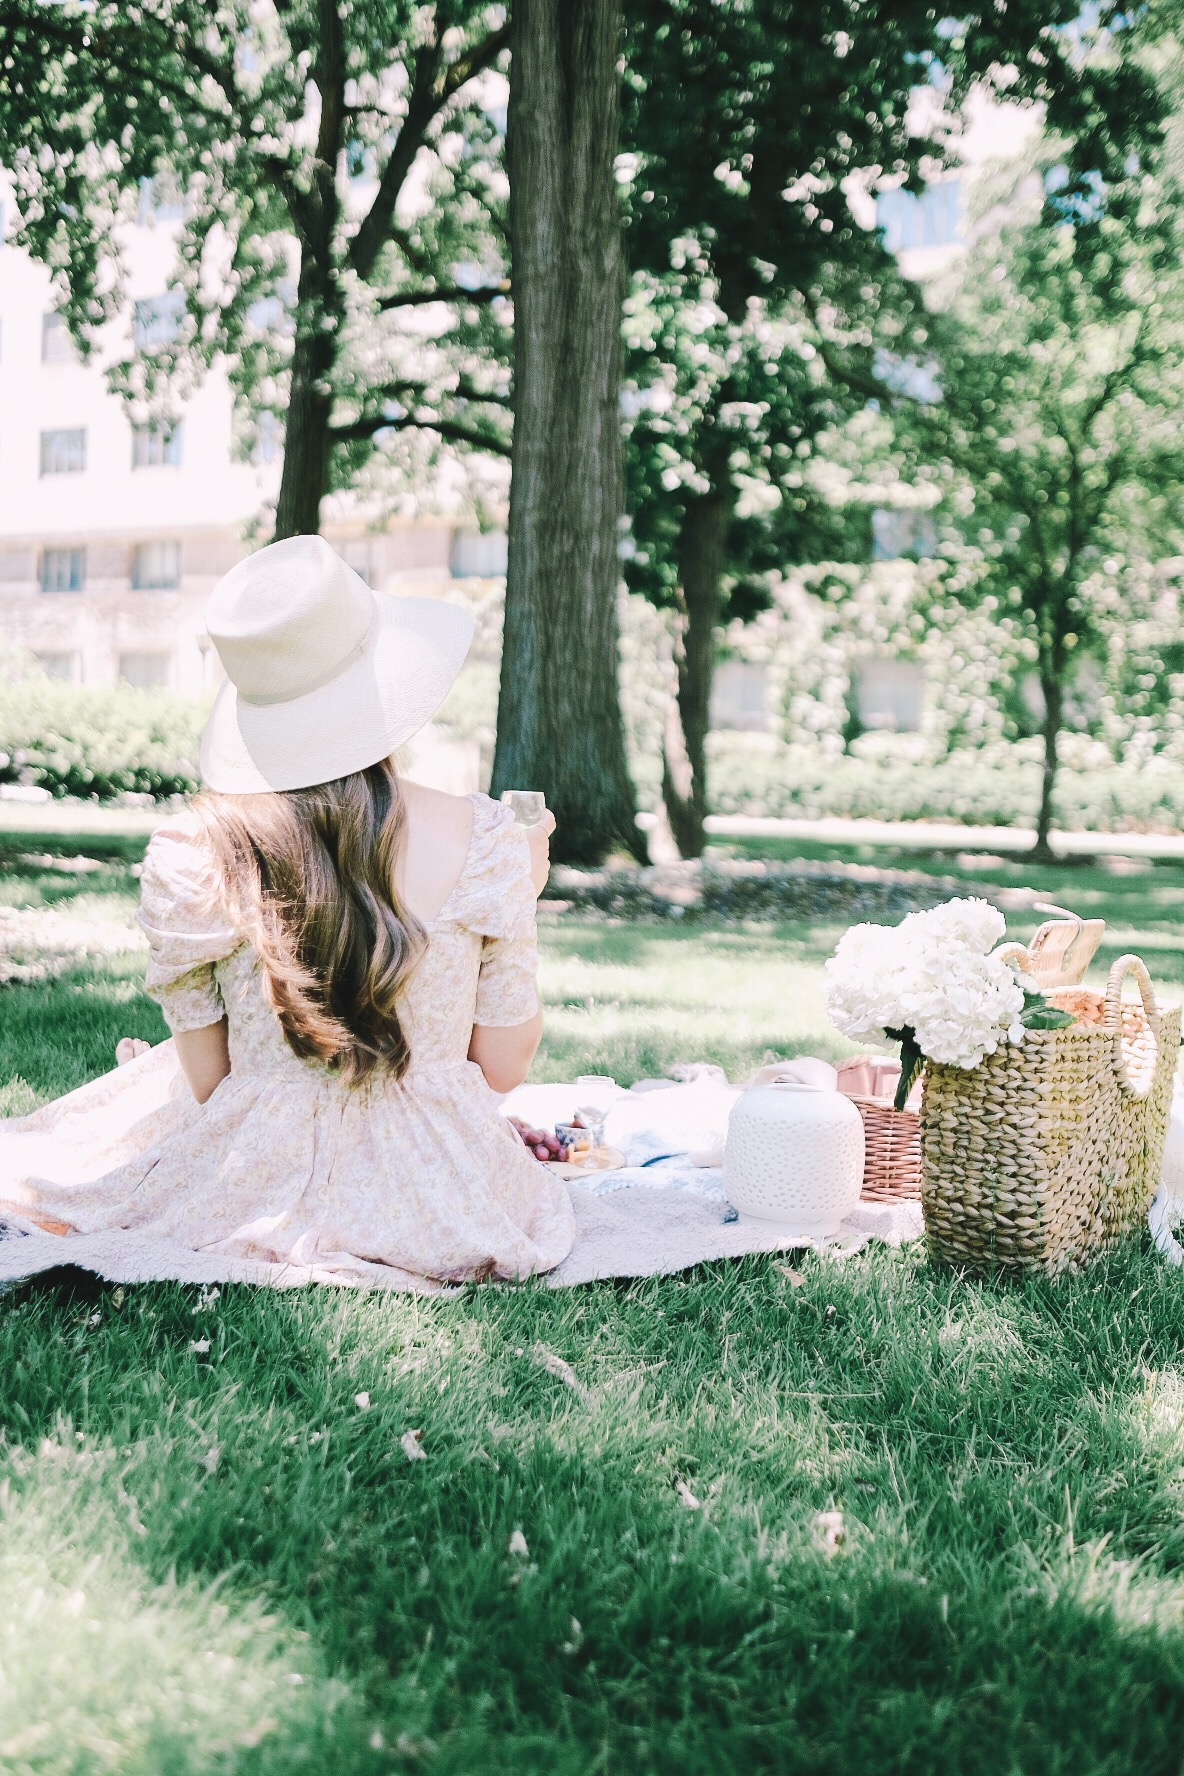 Picnic in the park | Miss Madeline Rose